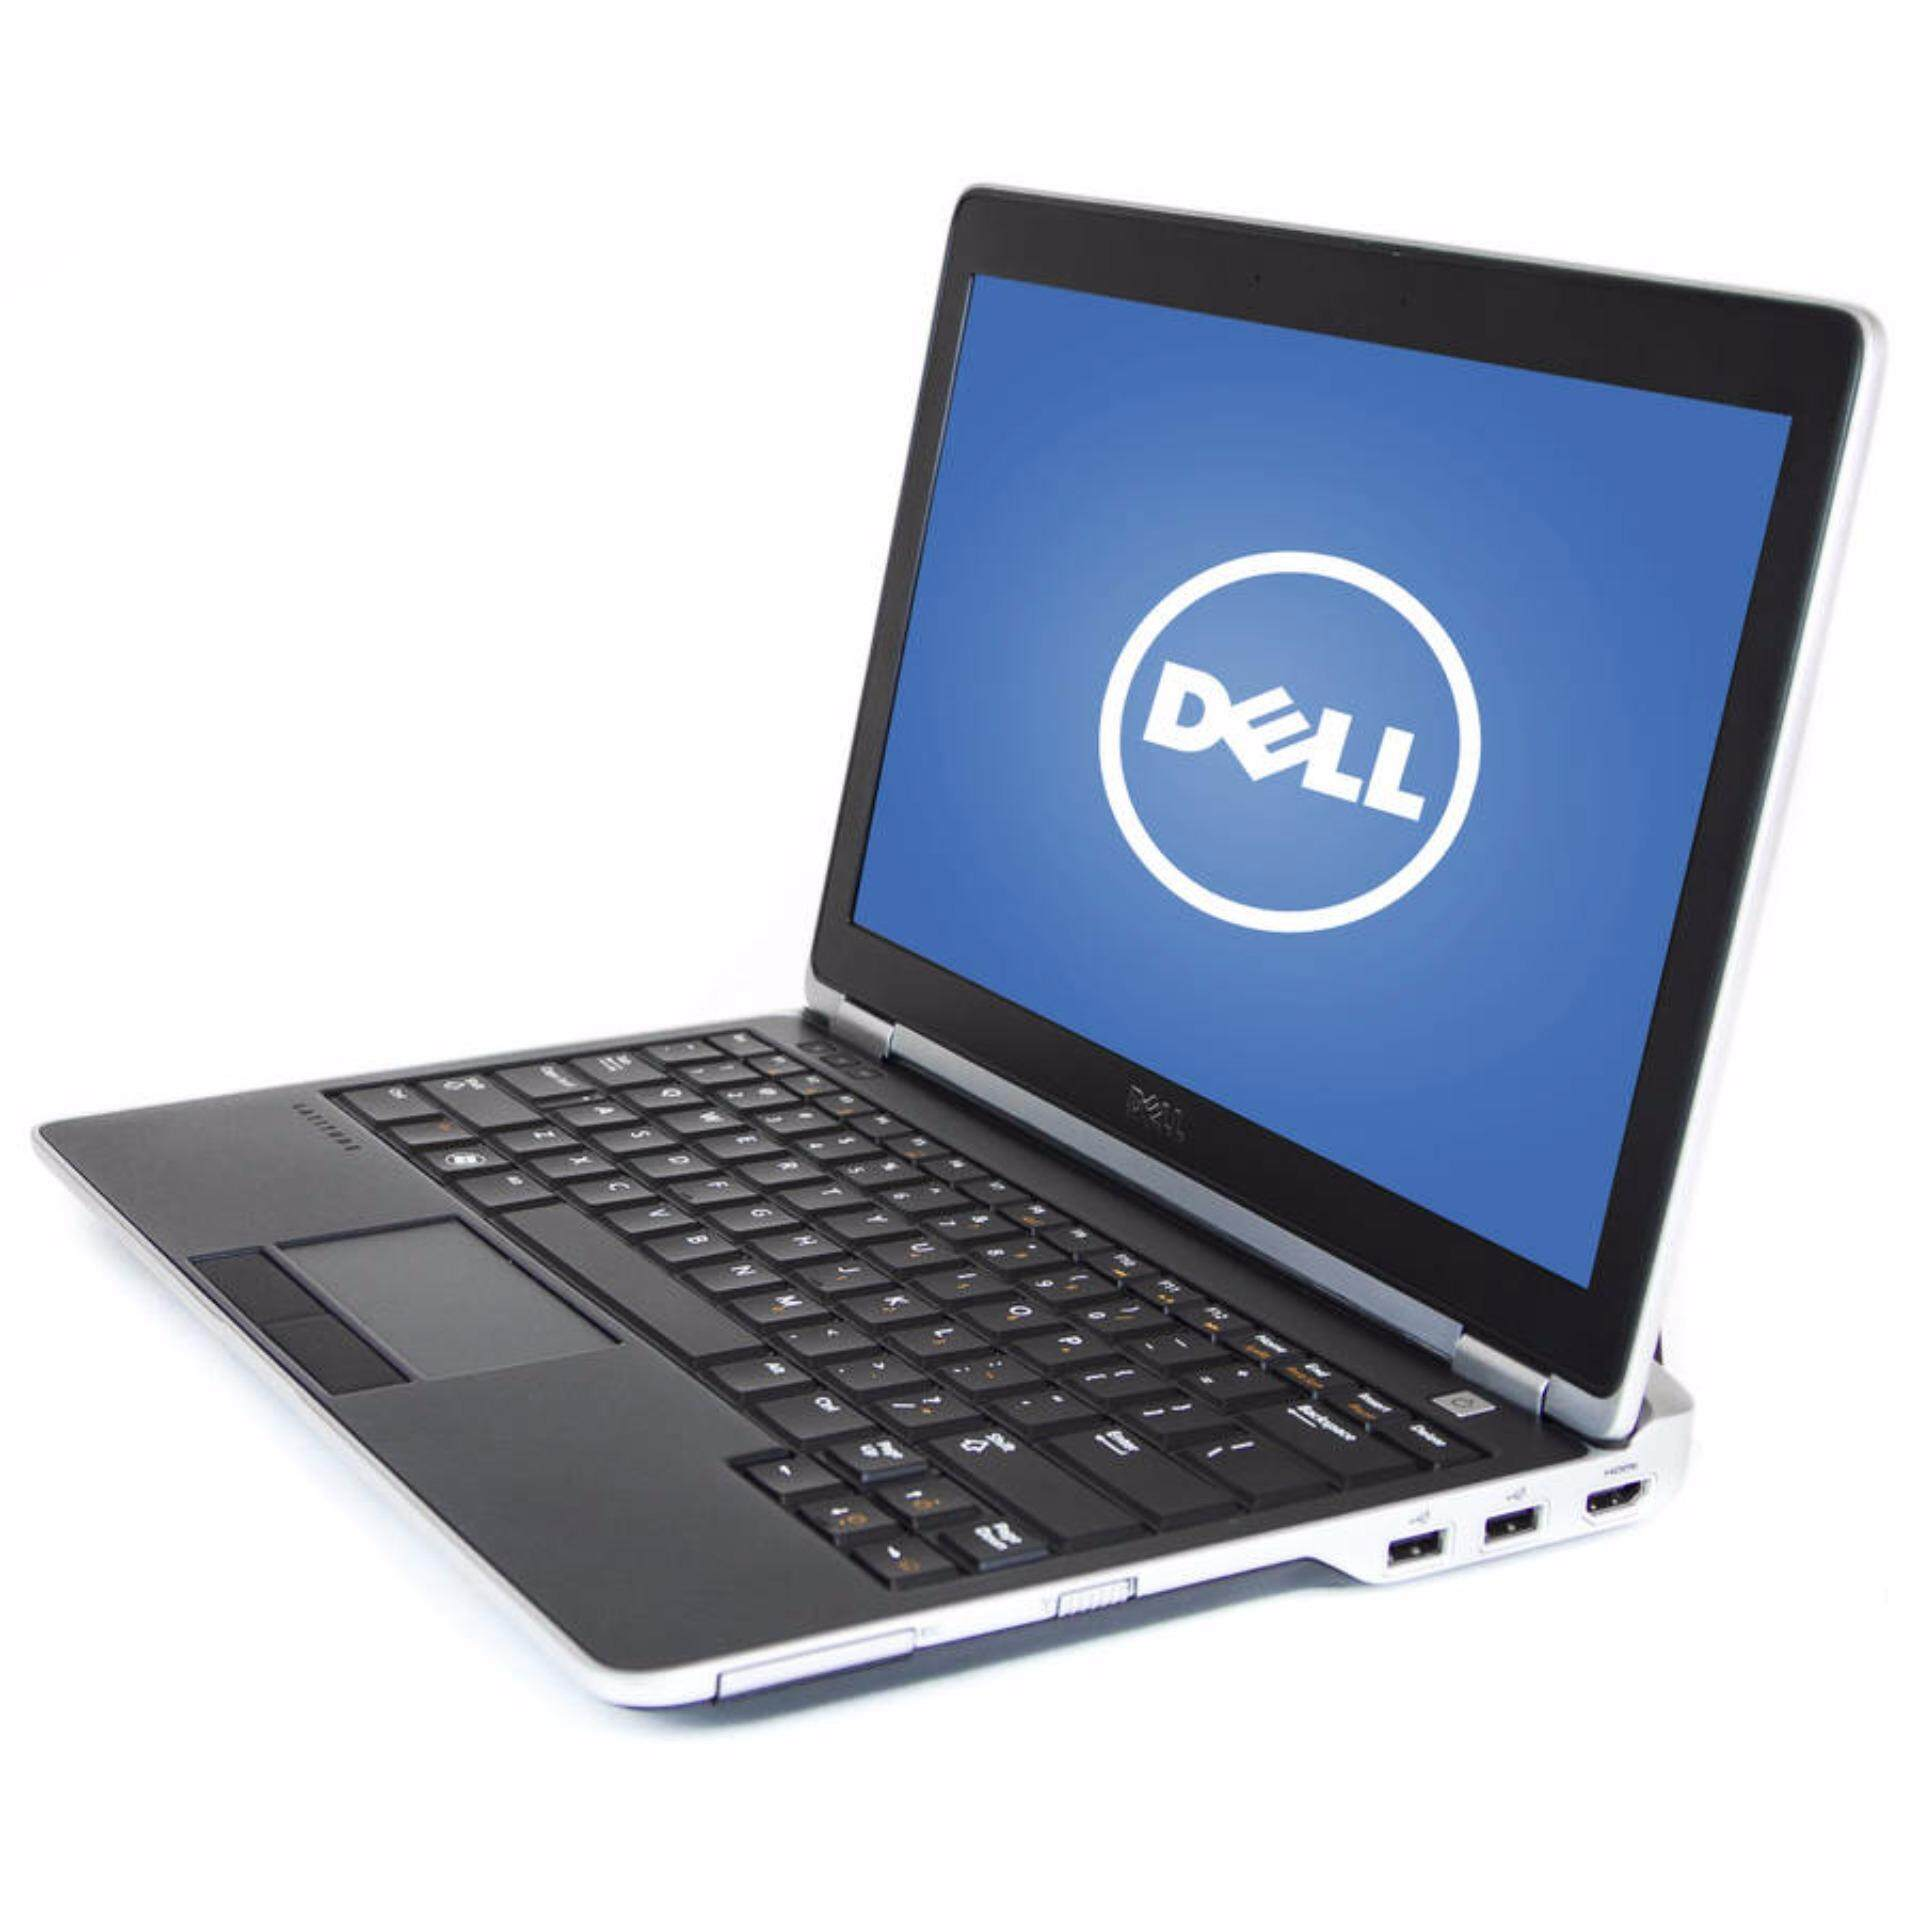 (Refurbished)Dell Latitude E6220(Ci5 2.5GHz/4GB Ram/320GB HDD/Cam/12 Inch Screen/Win7Pro Malaysia